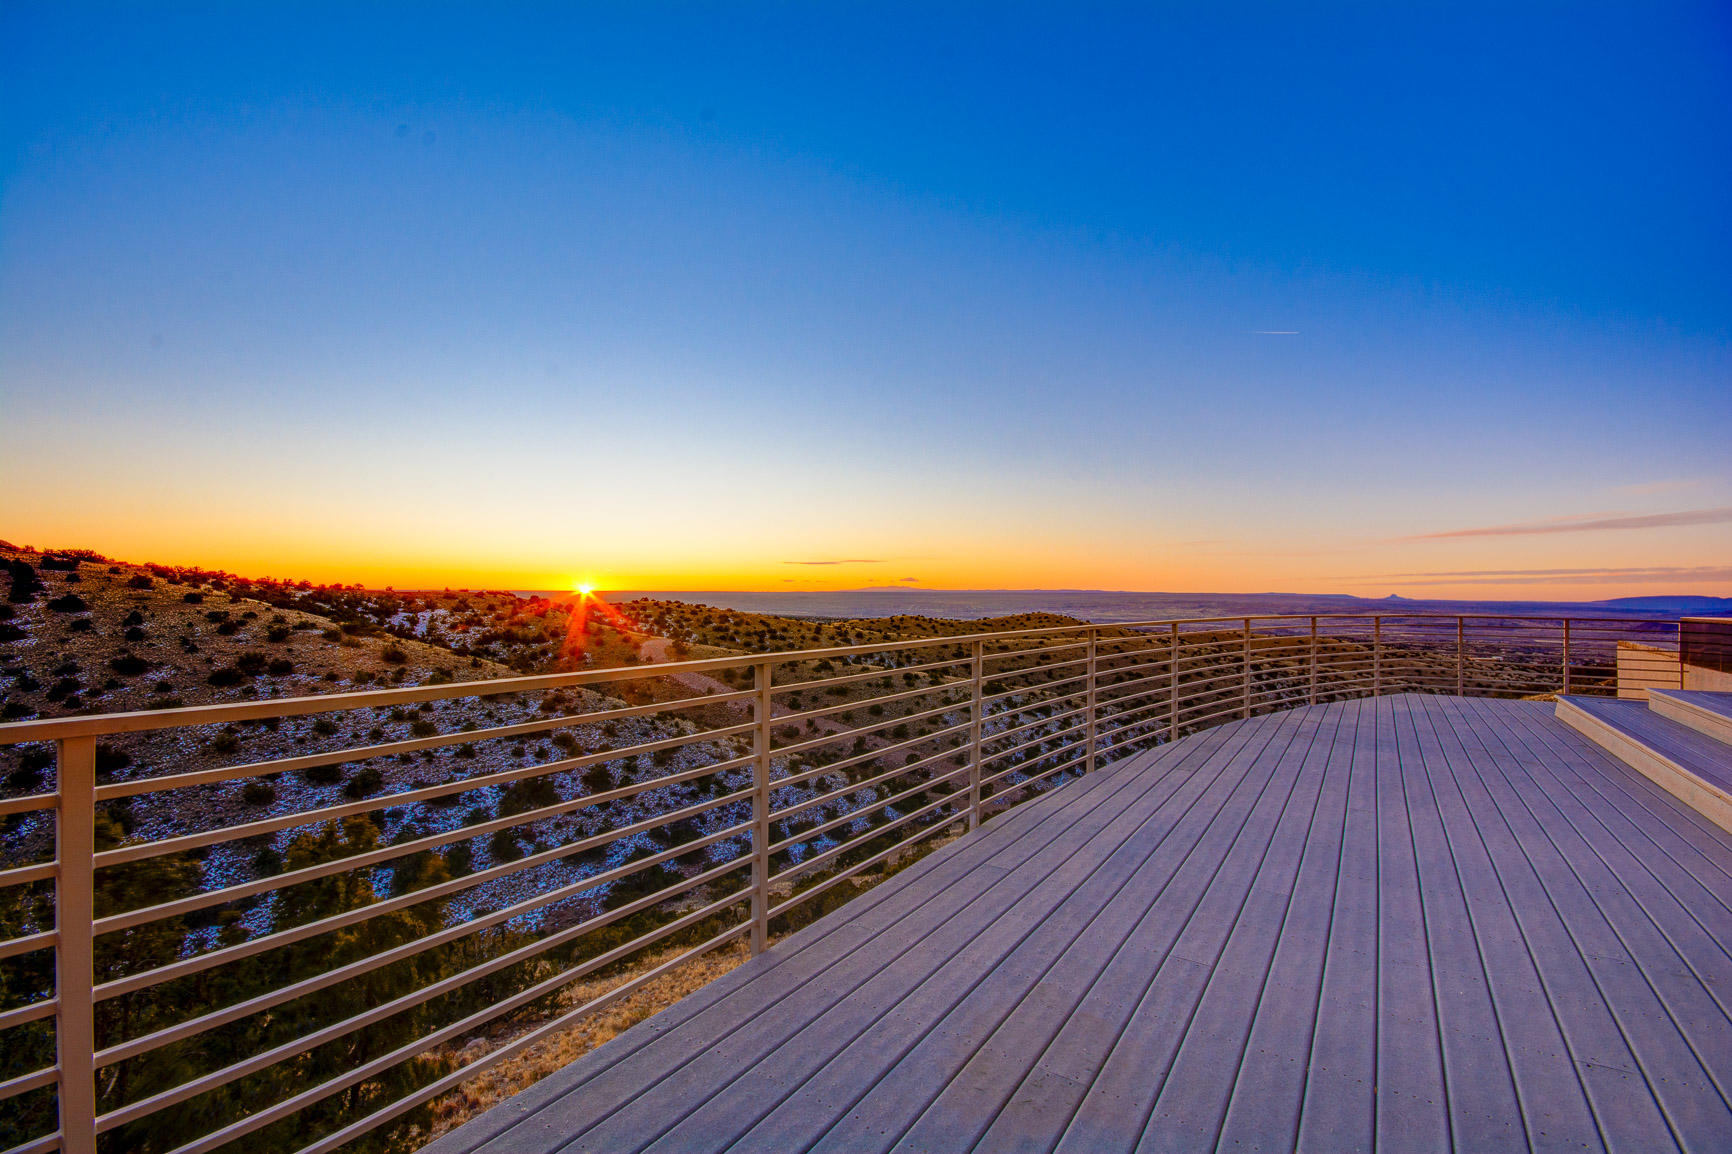 Exquisite custom contemporary home located on the top of the hill on 2.71 acres boasting breathtaking views from most everywhere... walls of windows take in the endless skies, rolling hills, distant mountain ranges. Multiple outdoor patio areas on the north & south where you catch a glimpse of the vast wildlife, fiery sunsets, snow-capped mountains & those coveted city lights as you swim in the glistening pool, it's dramatic! 2 spacious living areas, theater, stylish kitchen w/huge butlers pantry, island & bar, all designed for living & entertaining.  3 bedrooms en-suite, a gym w/sauna & steam room, awesome! Here's a treat, it's got an attached studio/workshop, classroom or home office for 2! A famous movie was filmed here in this elegant, classy & one of a kind home in beautiful Placitas!